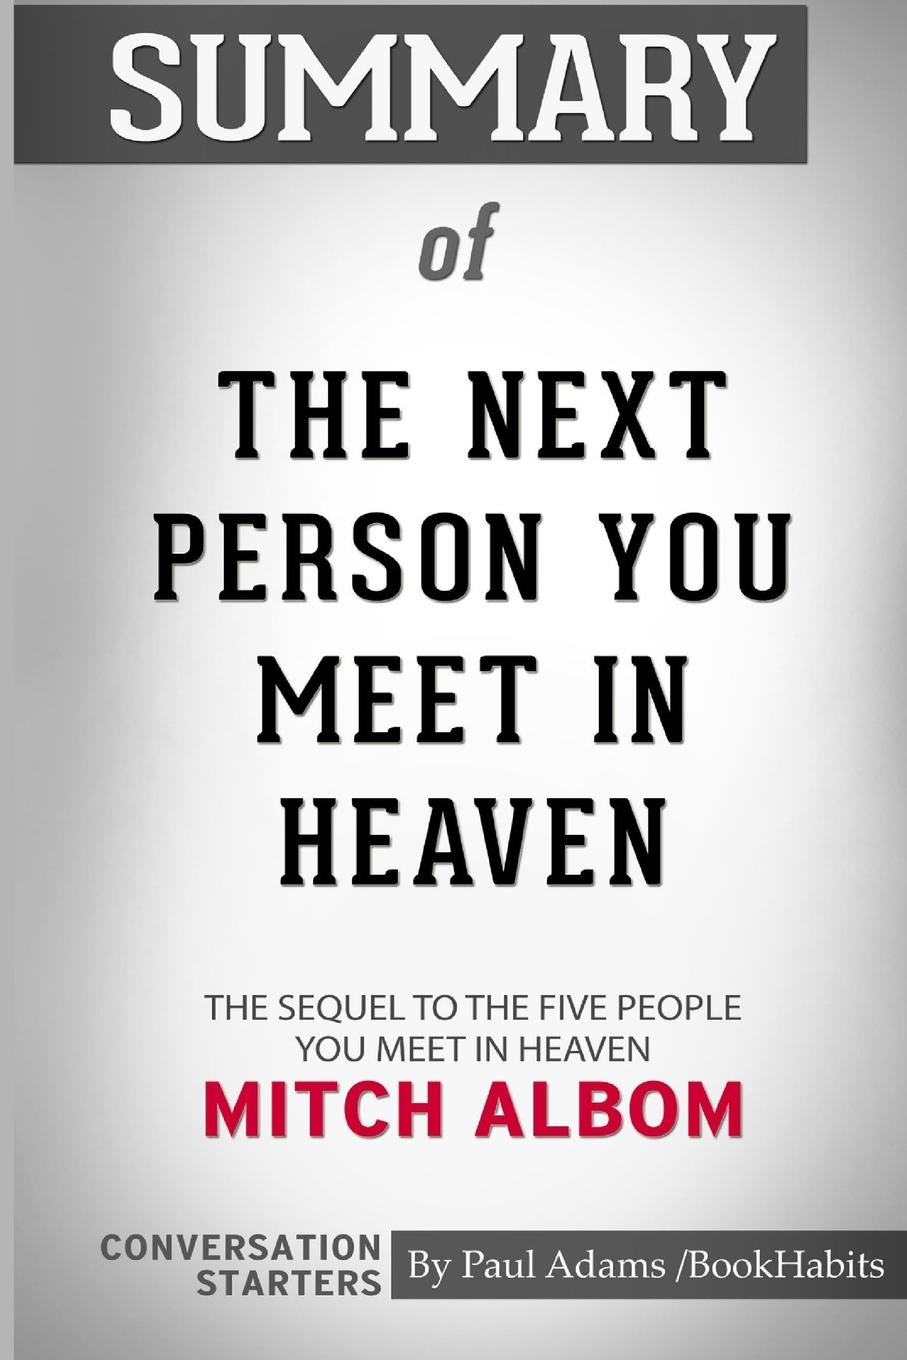 лучшая цена Paul Adams / BookHabits Summary of The Next Person You Meet in Heaven by Mitch Albom. Conversation Starters